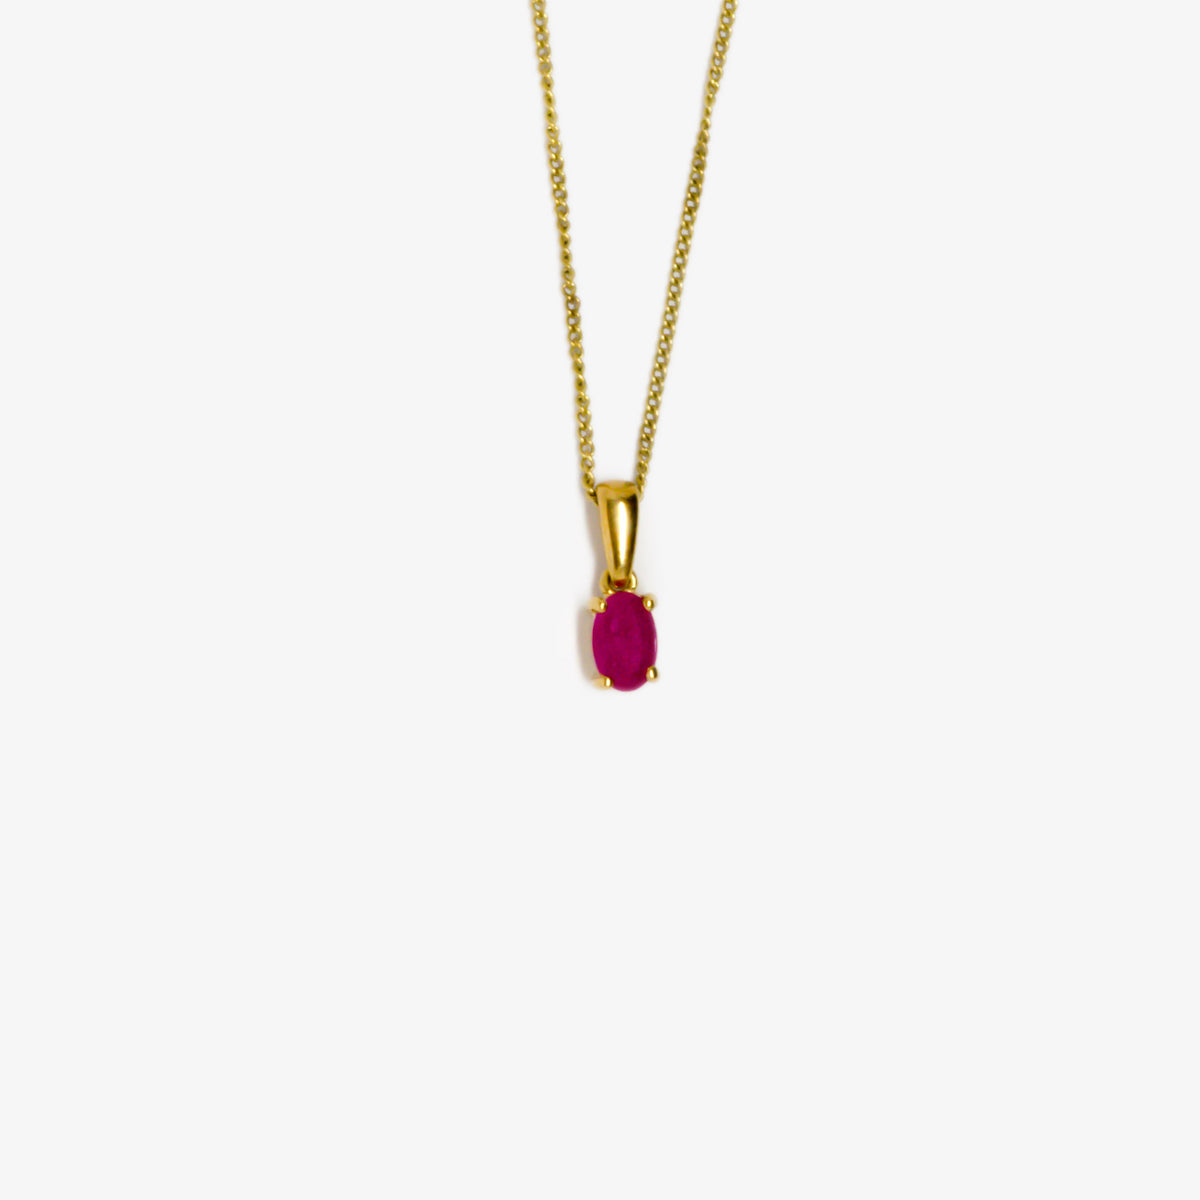 Oval Ruby Pendant Necklace